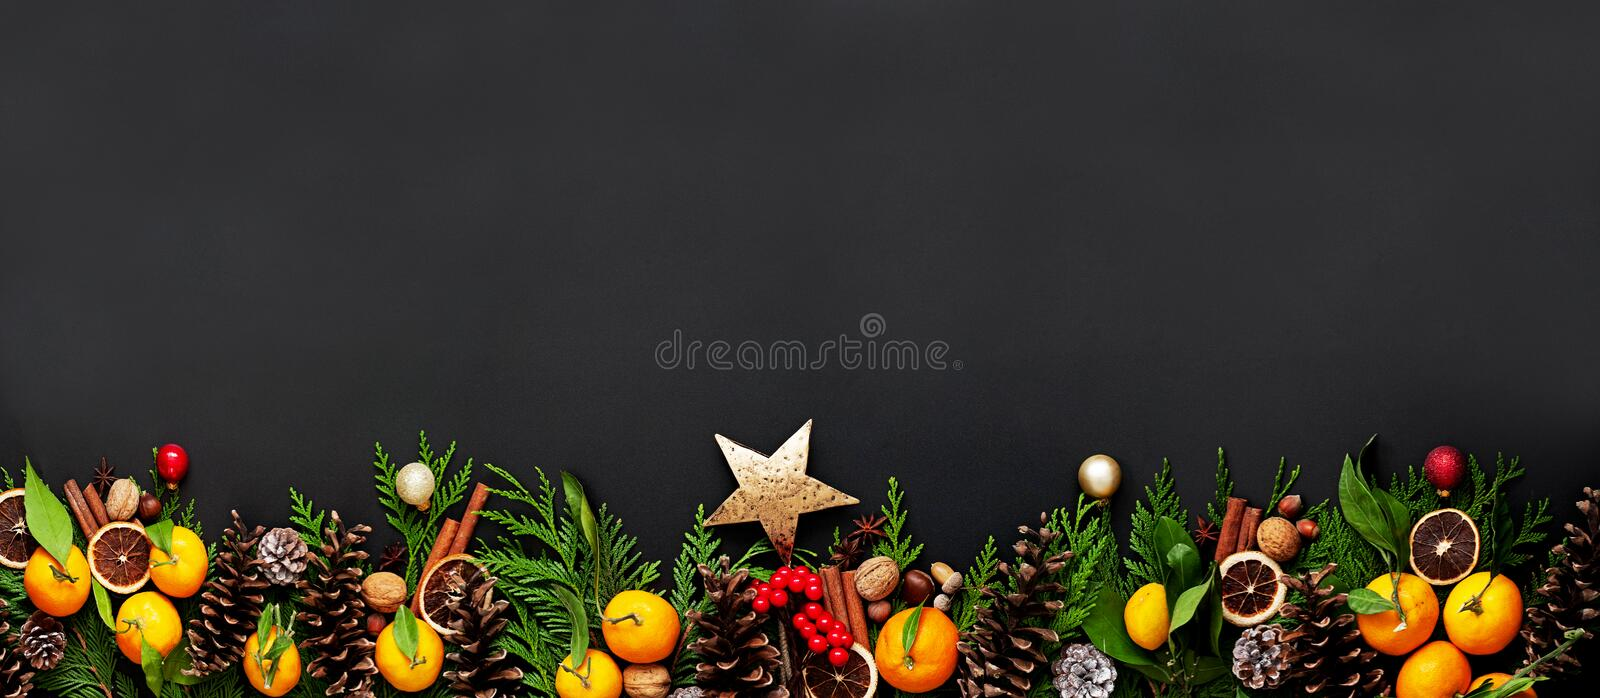 Christmas composition with branch of Christmas tree, tangerines, Christmas ornaments, pine cones on a black background. stock photography